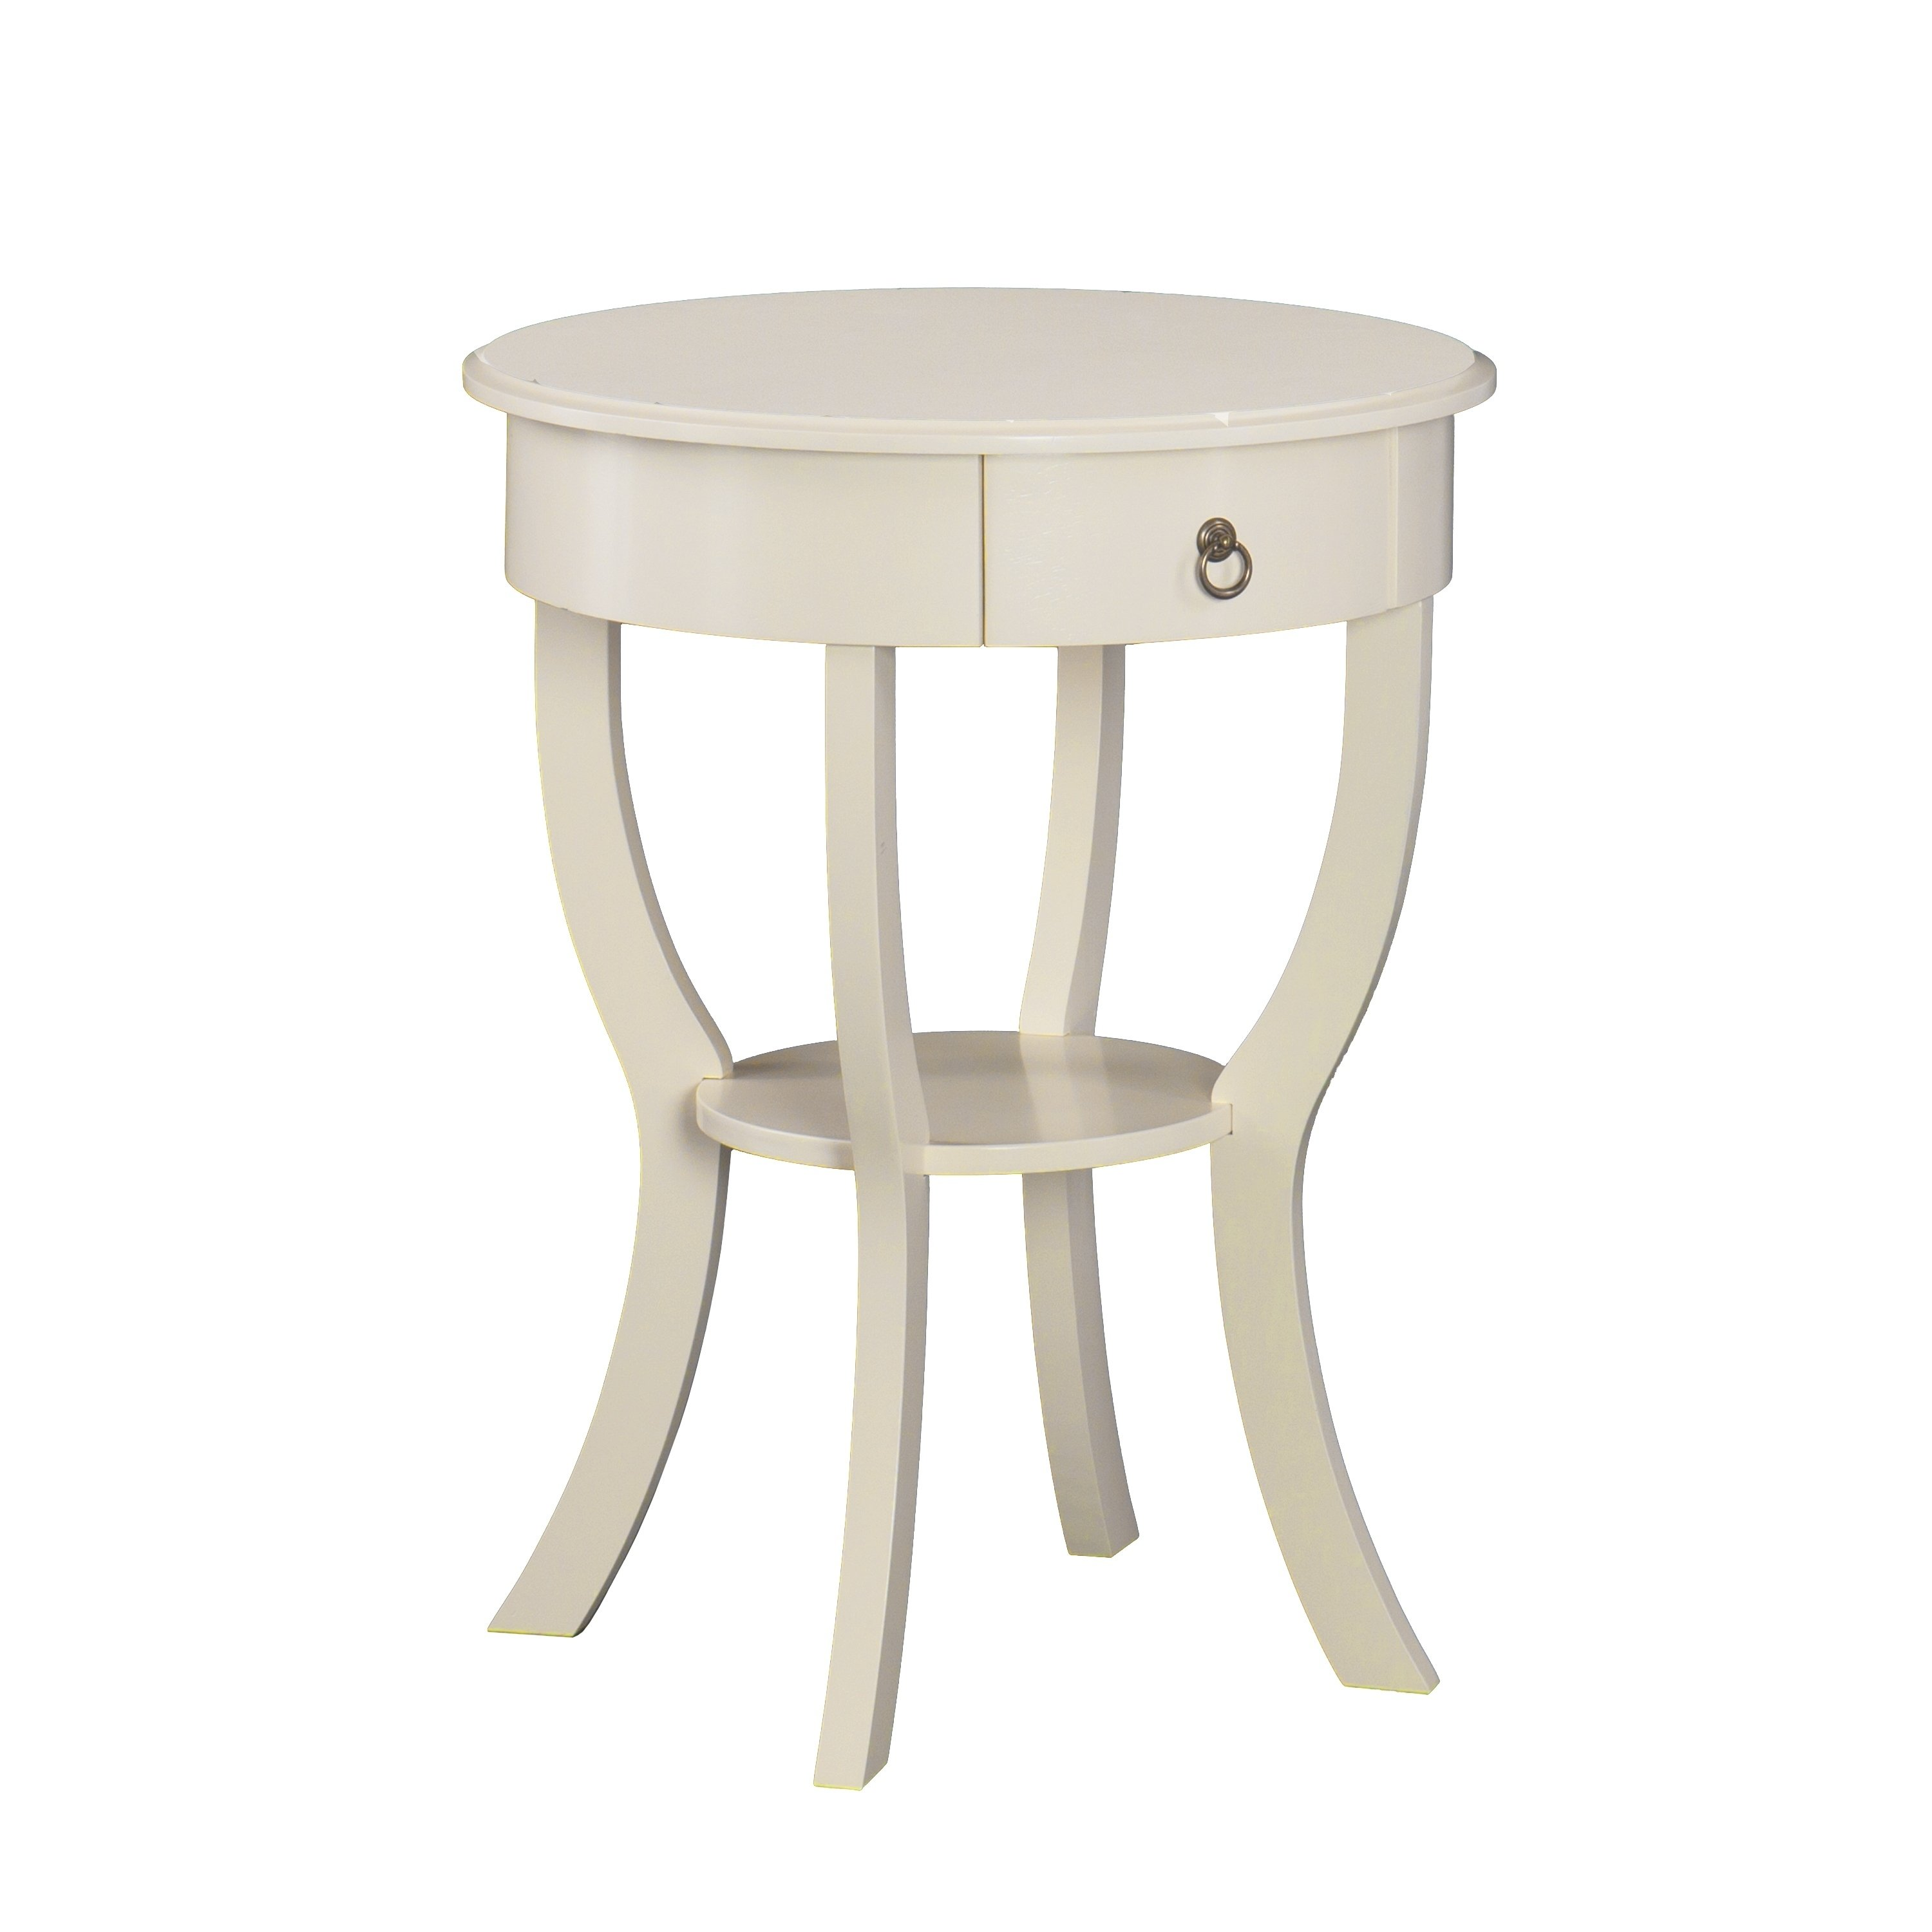 harper blvd lyman tall accent table with storage free pedestal shipping today decorative cabinets hand painted furniture black half moon round dining leaf beachy end tables small